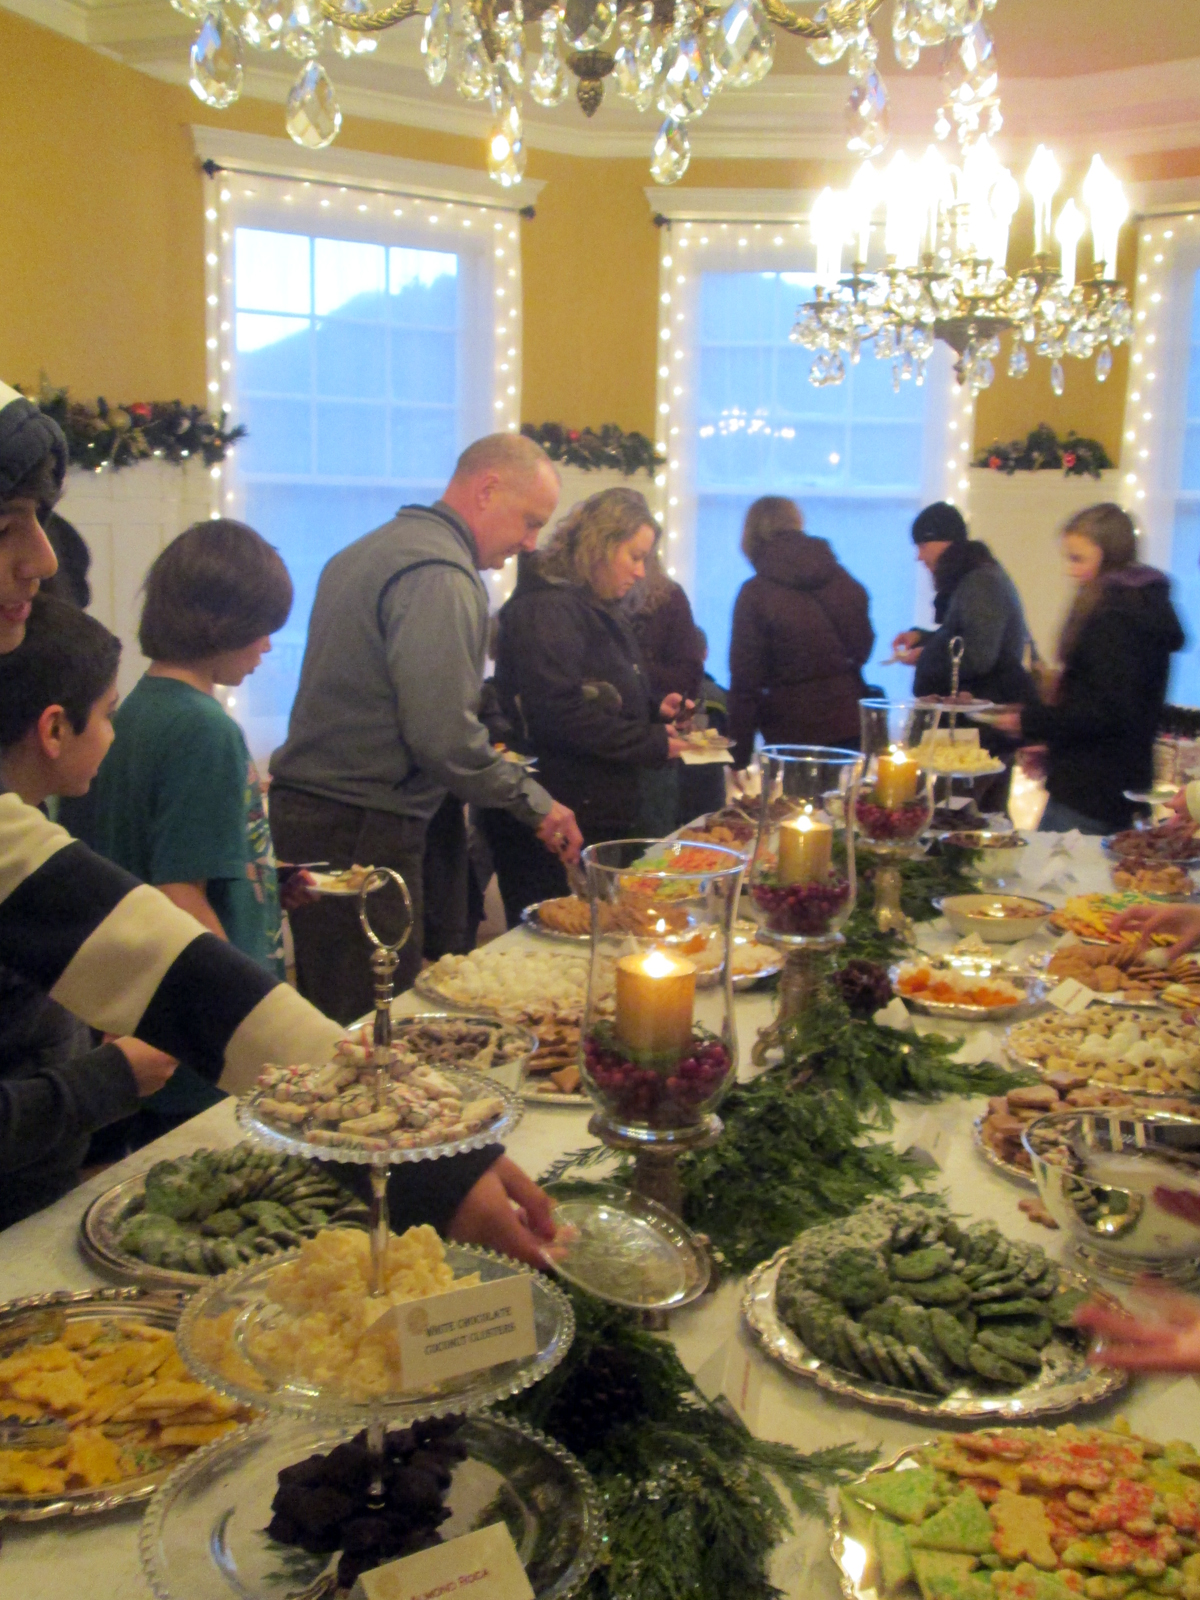 Attendees were able to fill plates with cookies, fudge and other treats